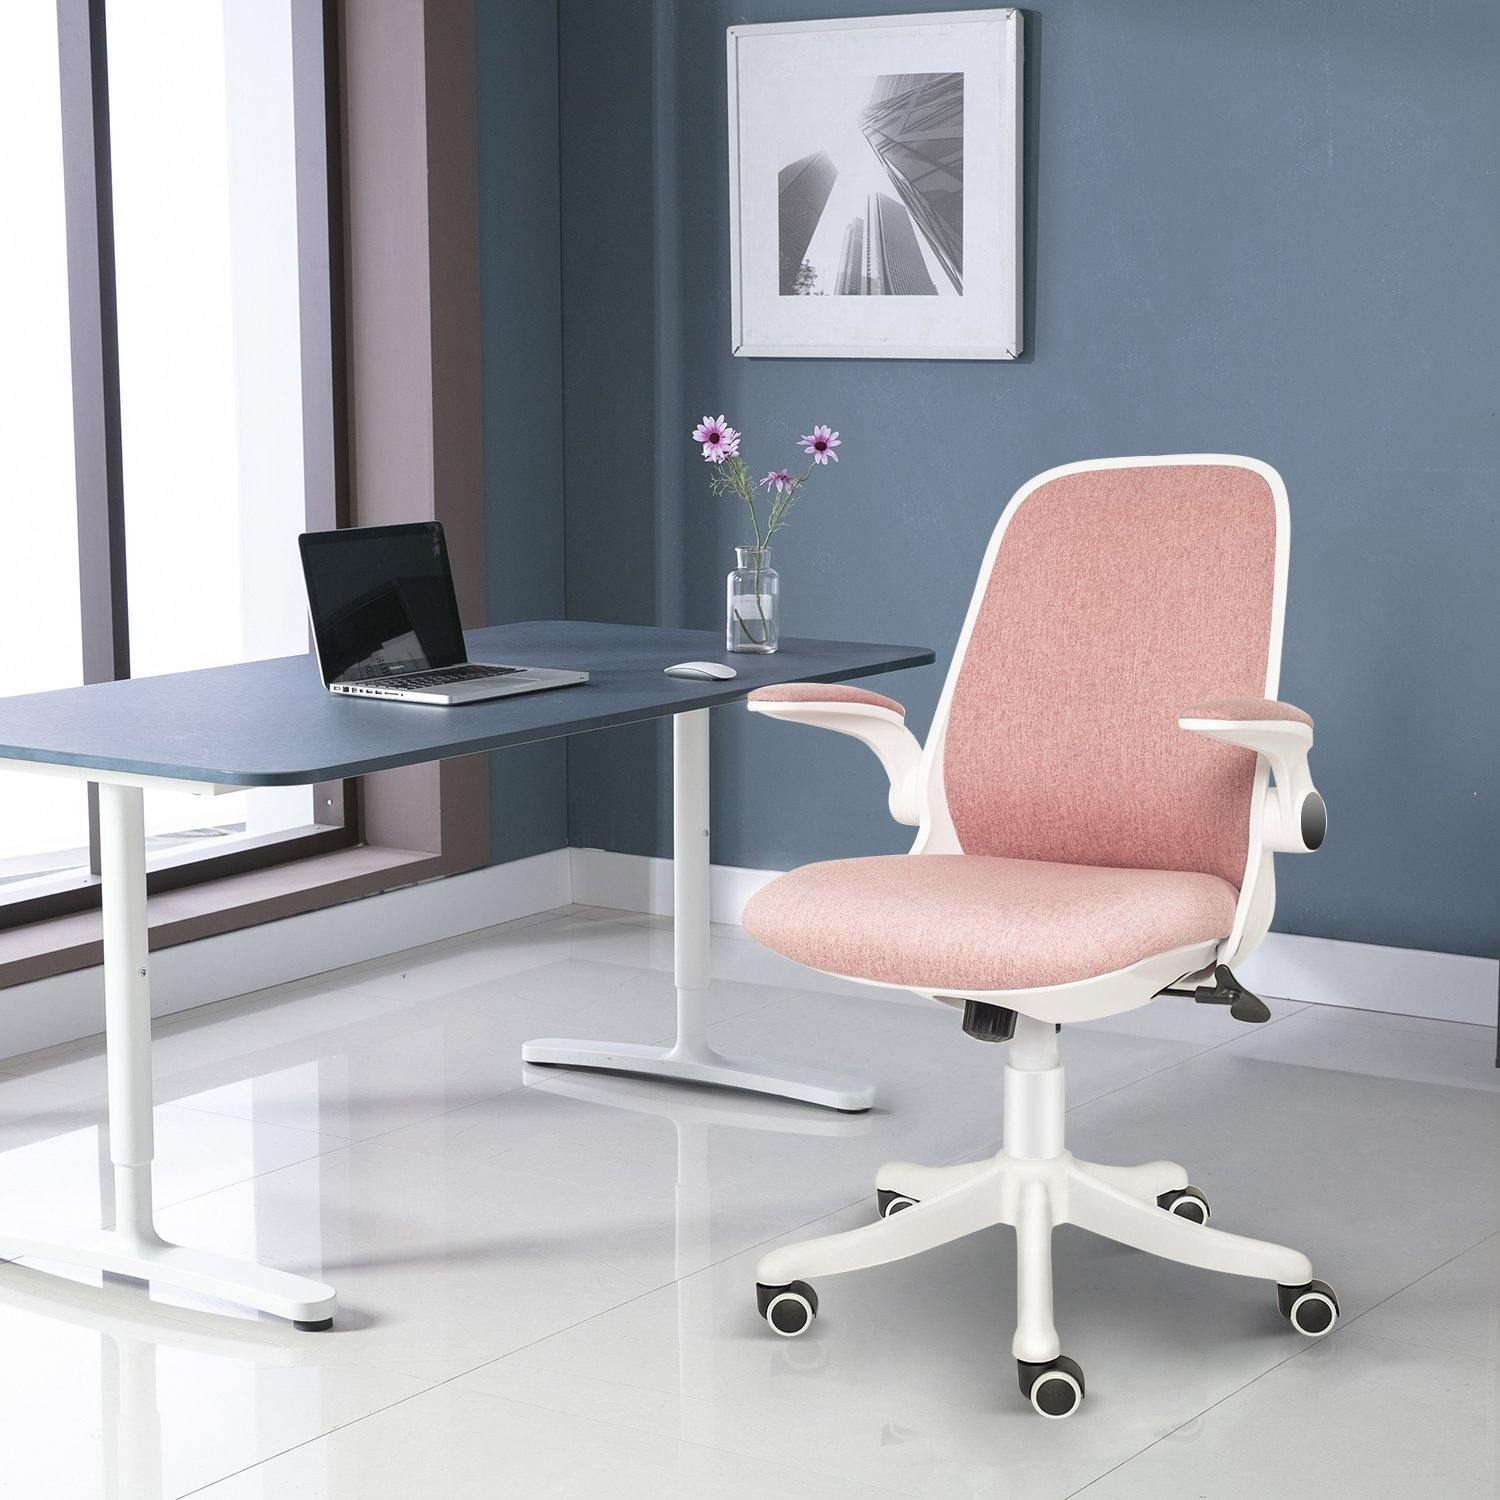 ELECWISH Ultra Comfort Ergonomic Office Chair